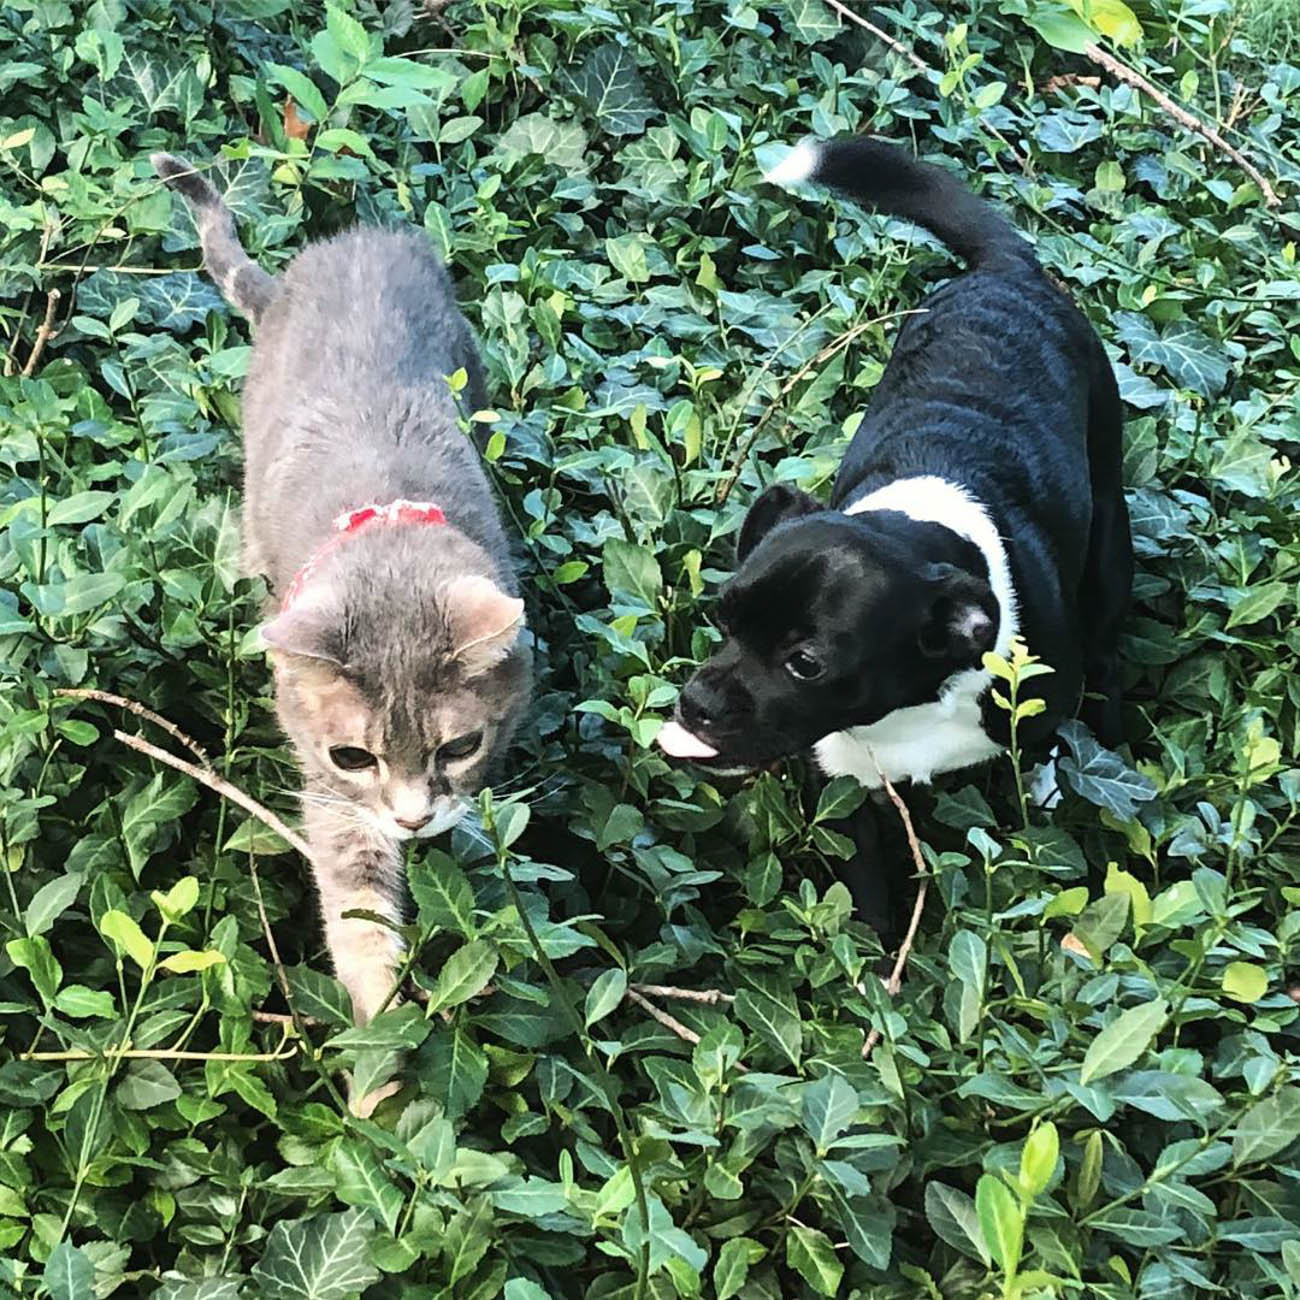 Wally is a senior rescue kitty who loves exploring outdoors with his puppy pal, Harry. / Image courtesy of Instagram user @old_man_wally // Published: 1.13.19